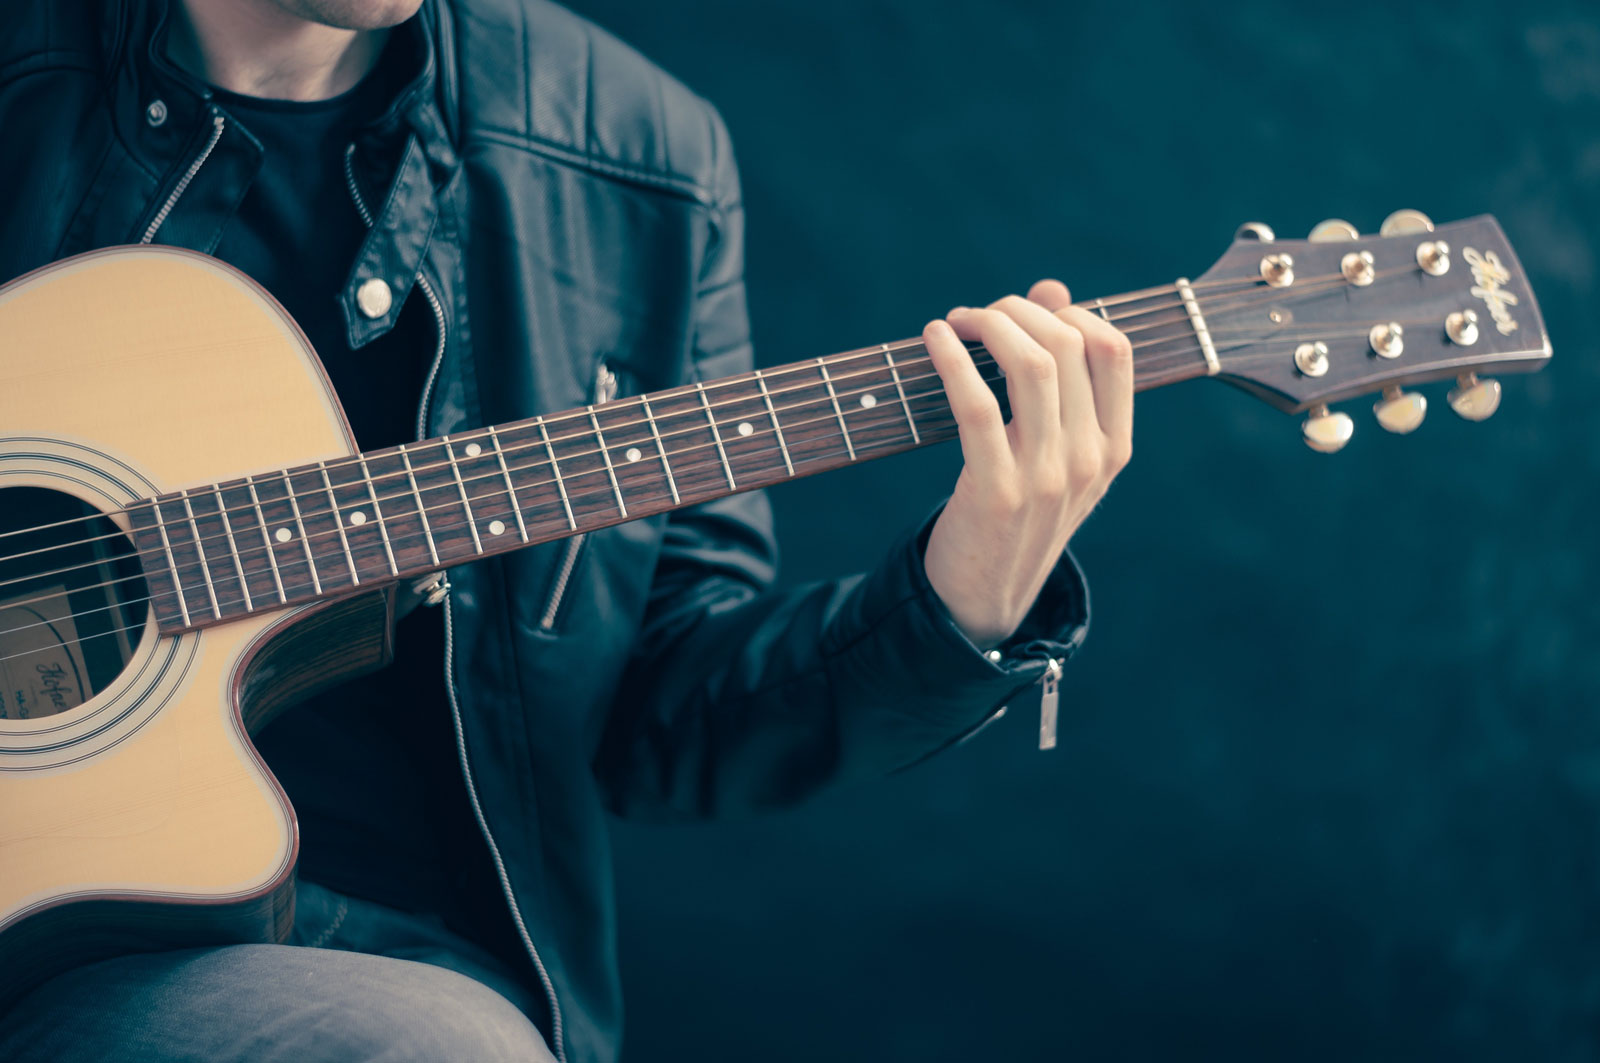 Man Playing Guitar | How To Find The Right Instructor For Guitar Lessons